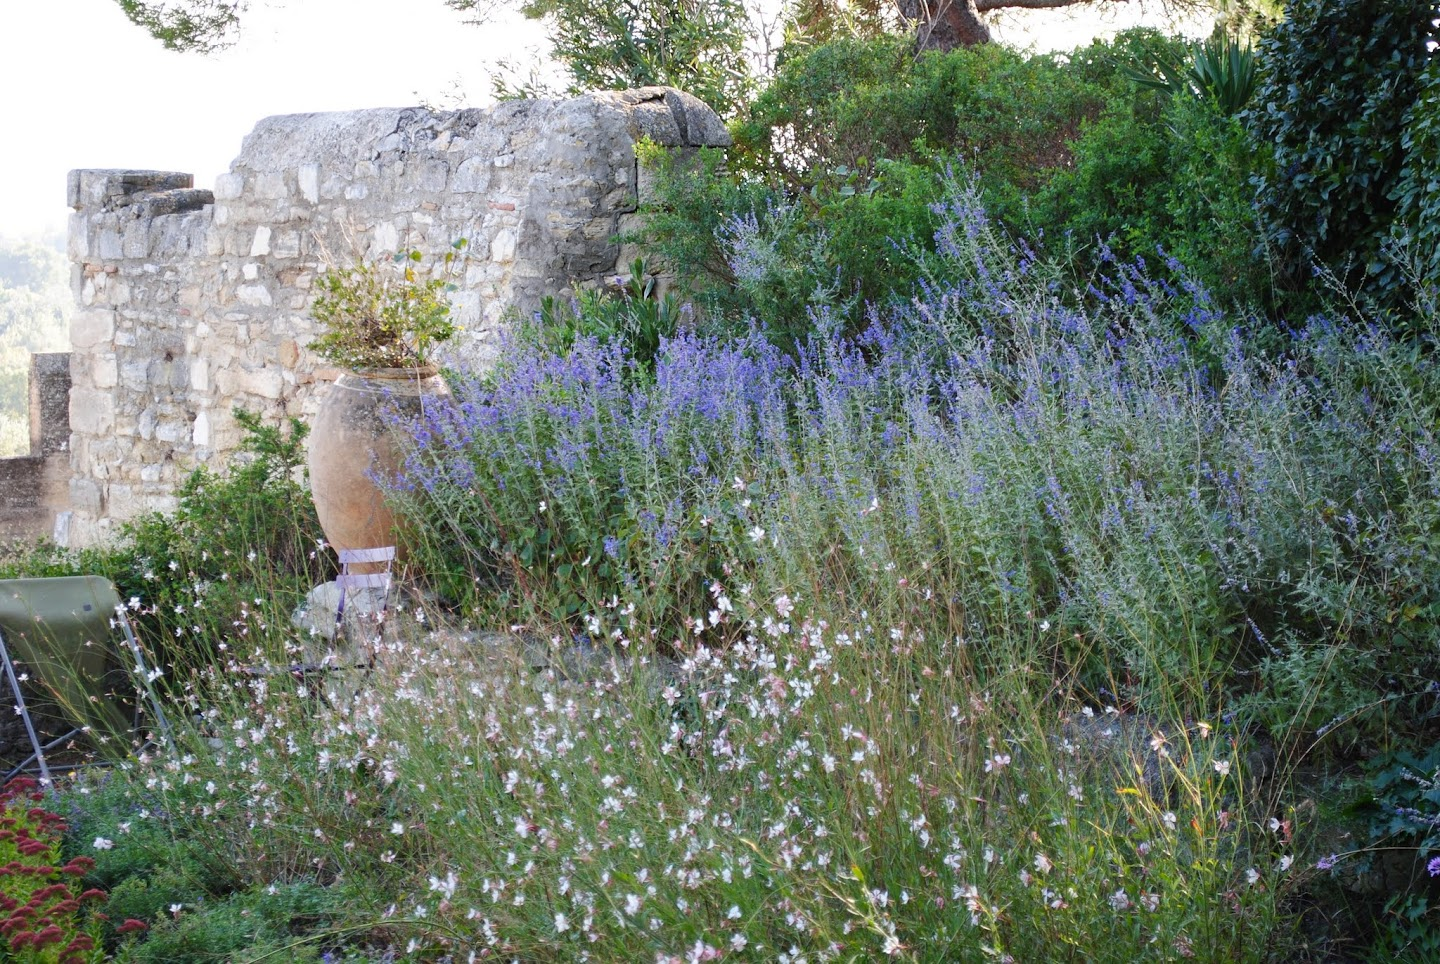 My Photos: France -- Villeneuve-les-Avignon -- Fort Saint-André Abbey & Gardens